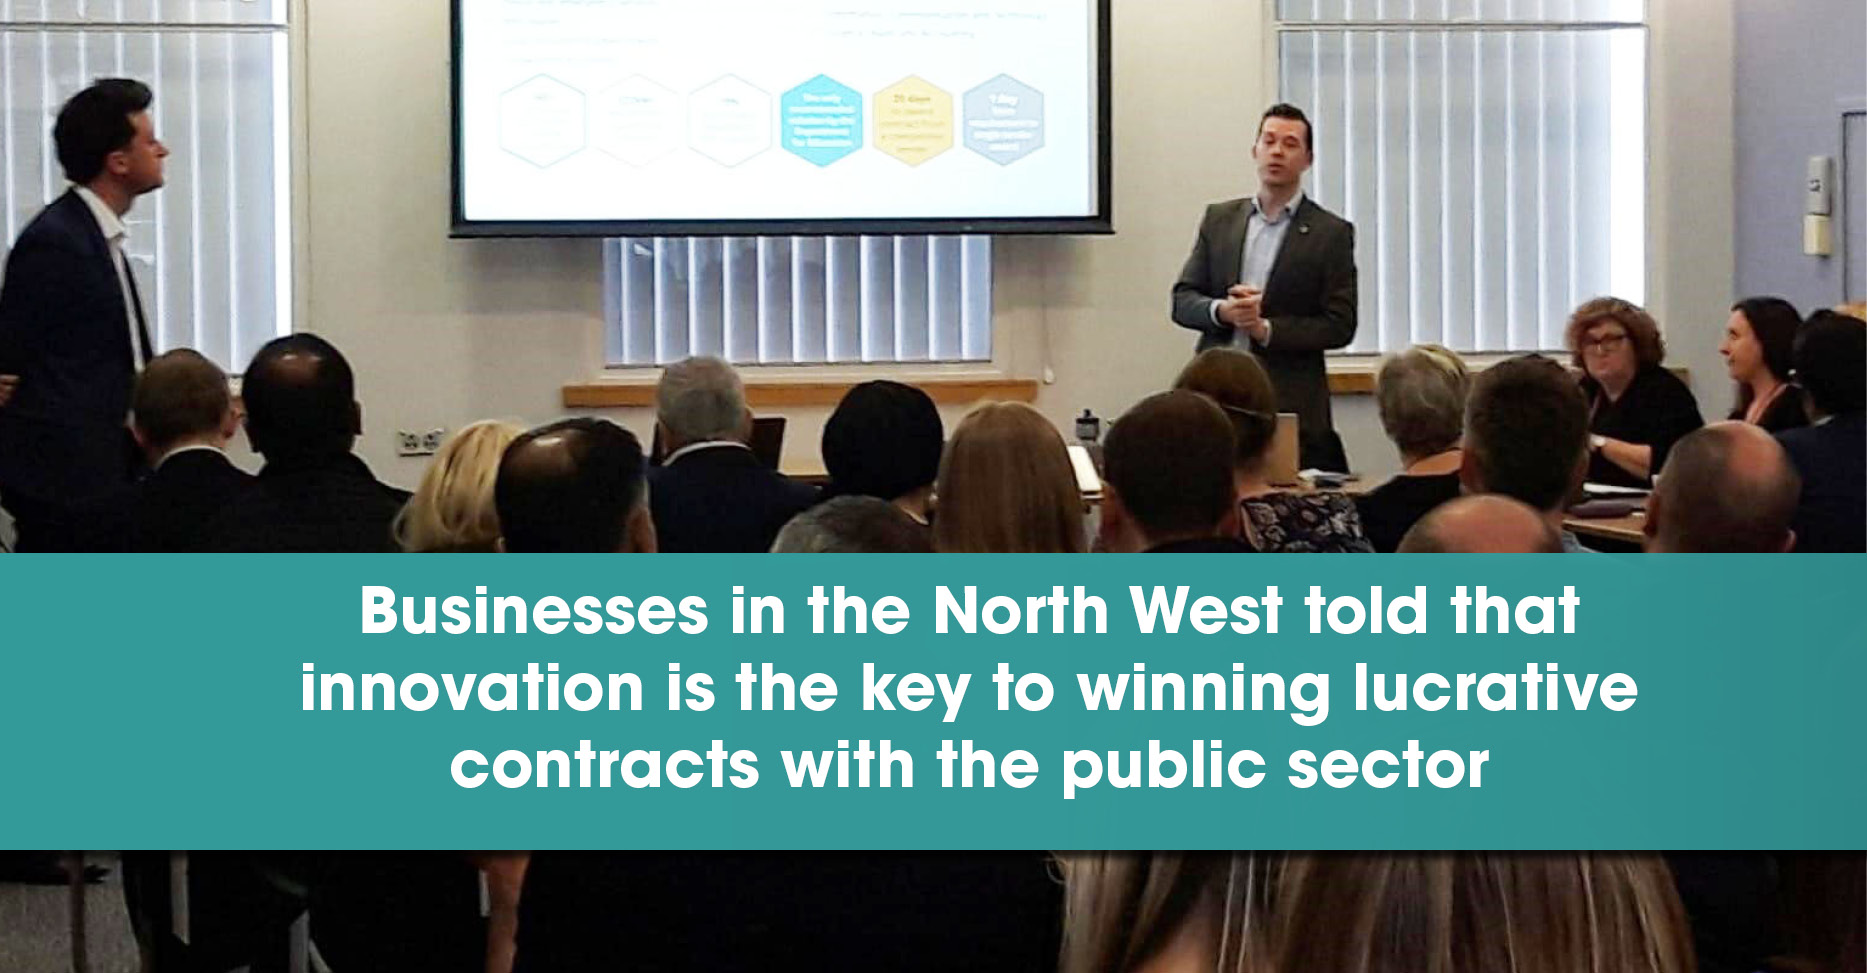 Businesses in the North West told that innovation is the key to winning lucrative contracts with the public sector